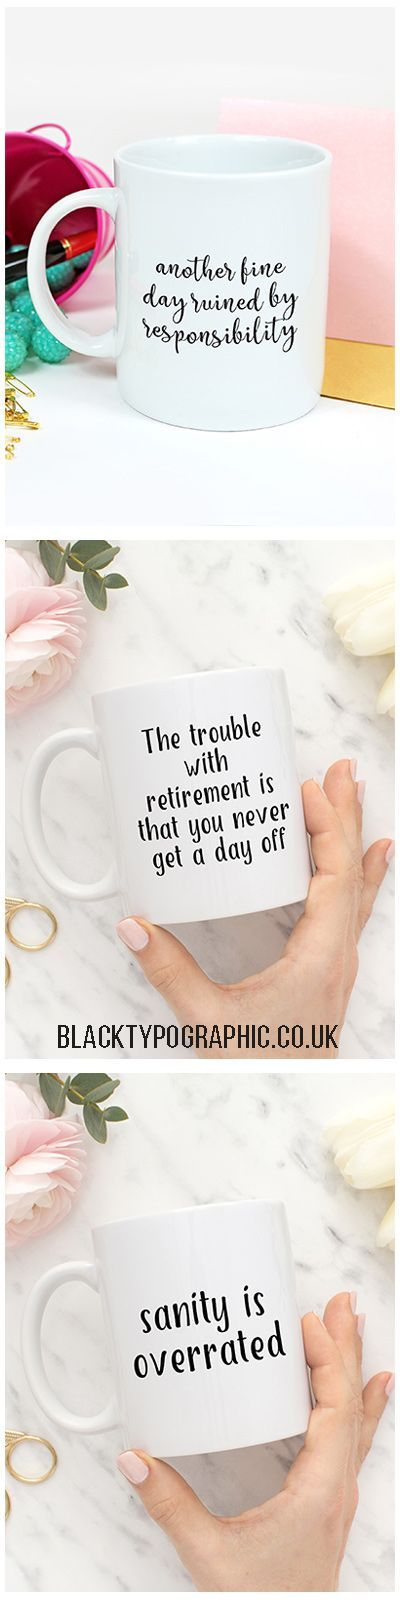 Throw away those mismatched mugs and buy a collection of black and white ones.  That way they'll always match no matter where you get them from. Smash one, replace it with another cute black and white one.  Coffee mugs for her, funny mugs for coffee, coff